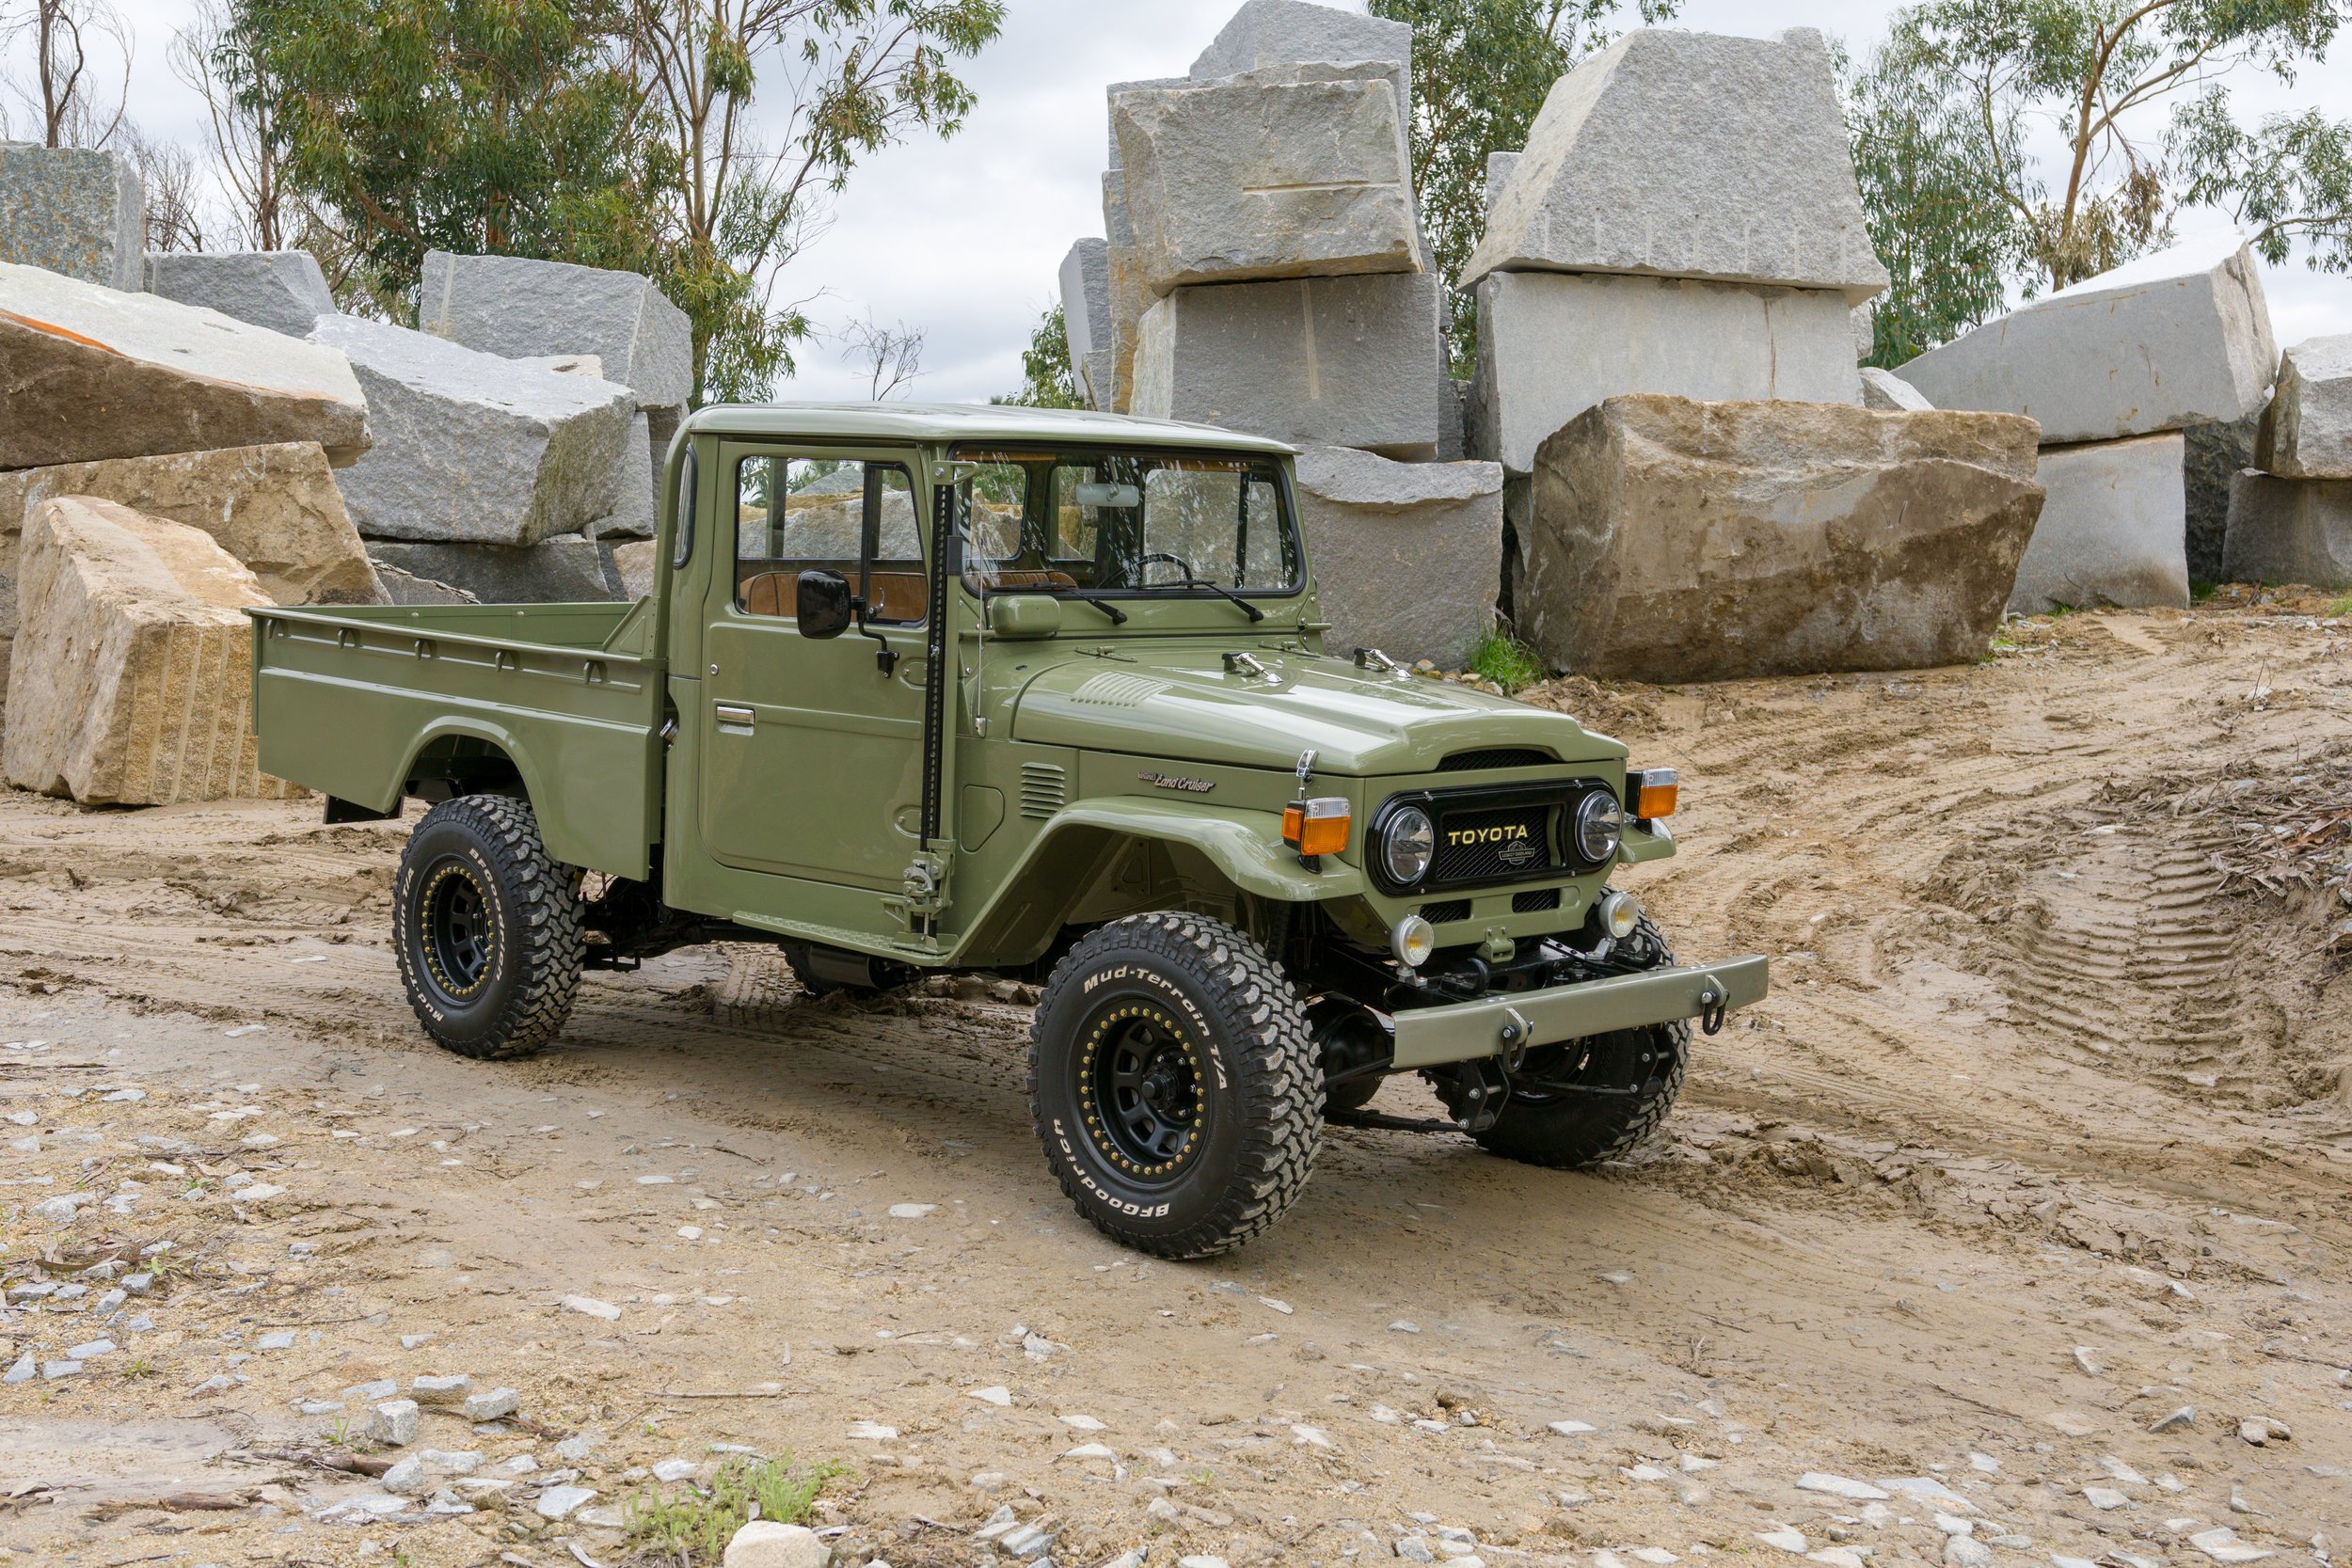 LegacyOverland_1978_ToyotaLandCruiser_HJ45_pick-up_quarry_9.jpg